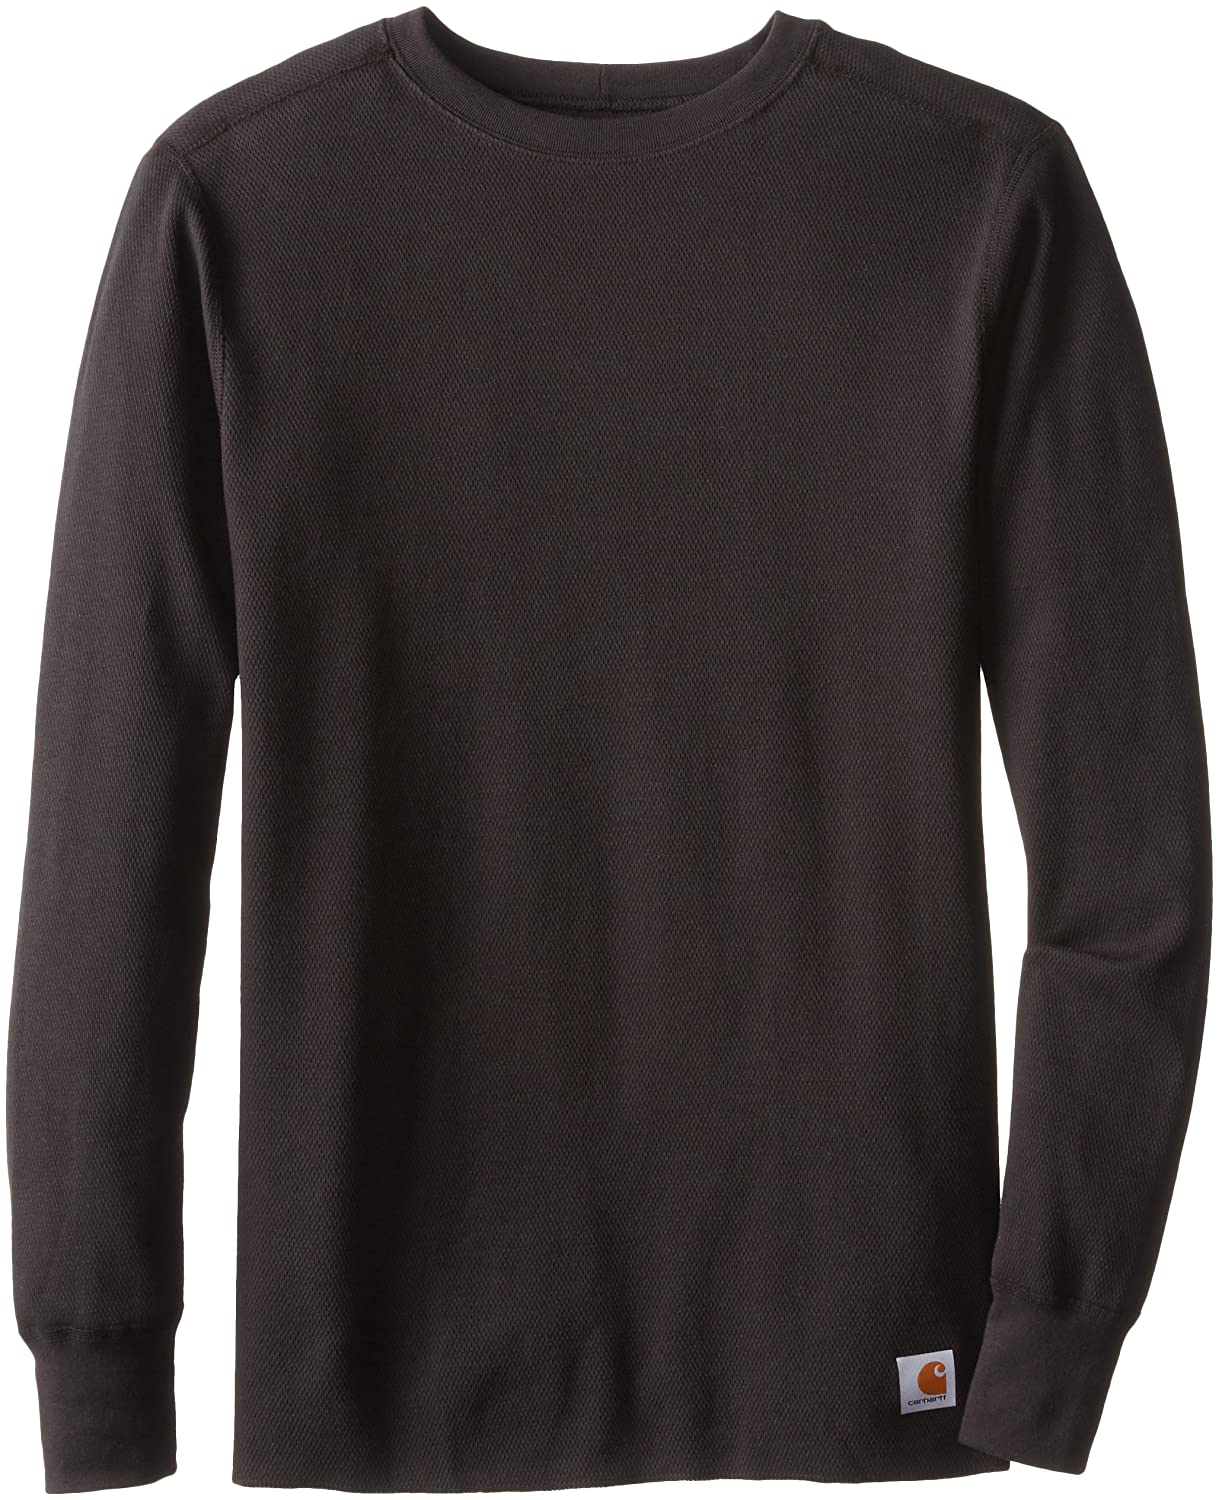 Carhartt mens tall Base Force(TM) Cotton Super-cold Weather Crew Neck Top - Tall Carhartt Sportswear - Mens 100639